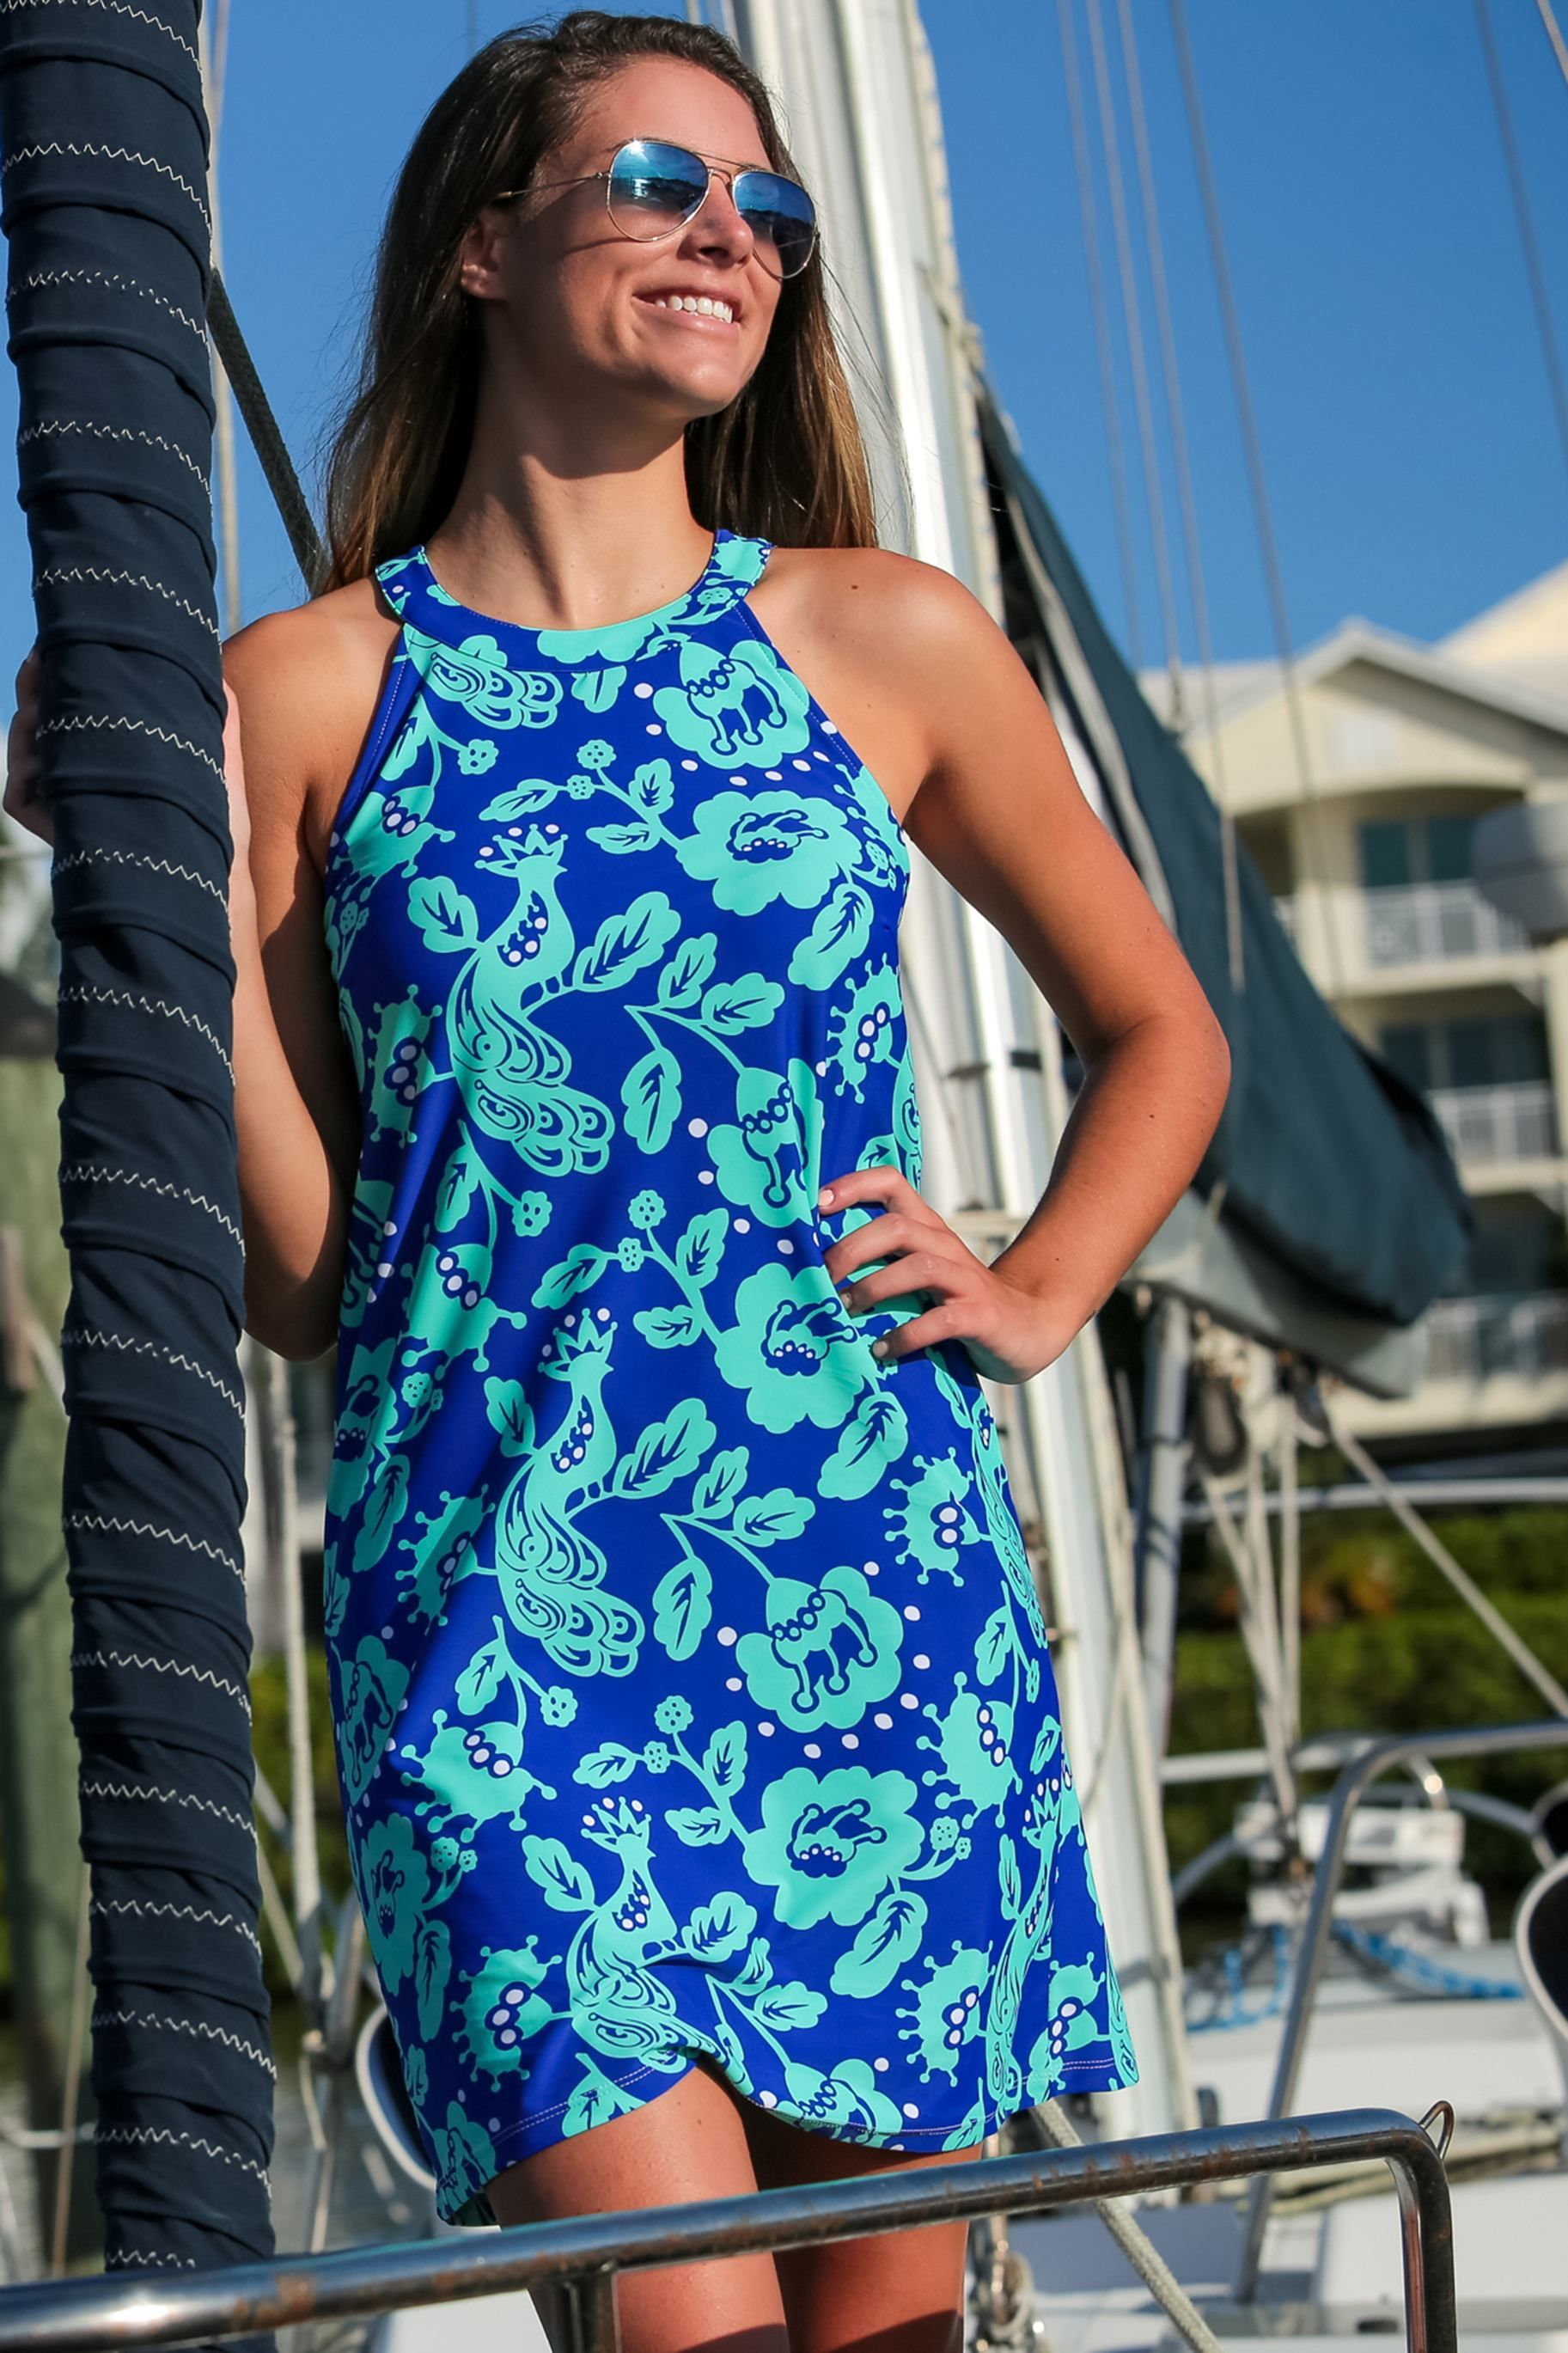 Great Summer Dress With Wrinkle Resistant Fabric Feels Cool On The Skin And Has Upf 50 Excellent Sun Protection All F Clothes For Women Prep Style Fashion [ 2738 x 1825 Pixel ]